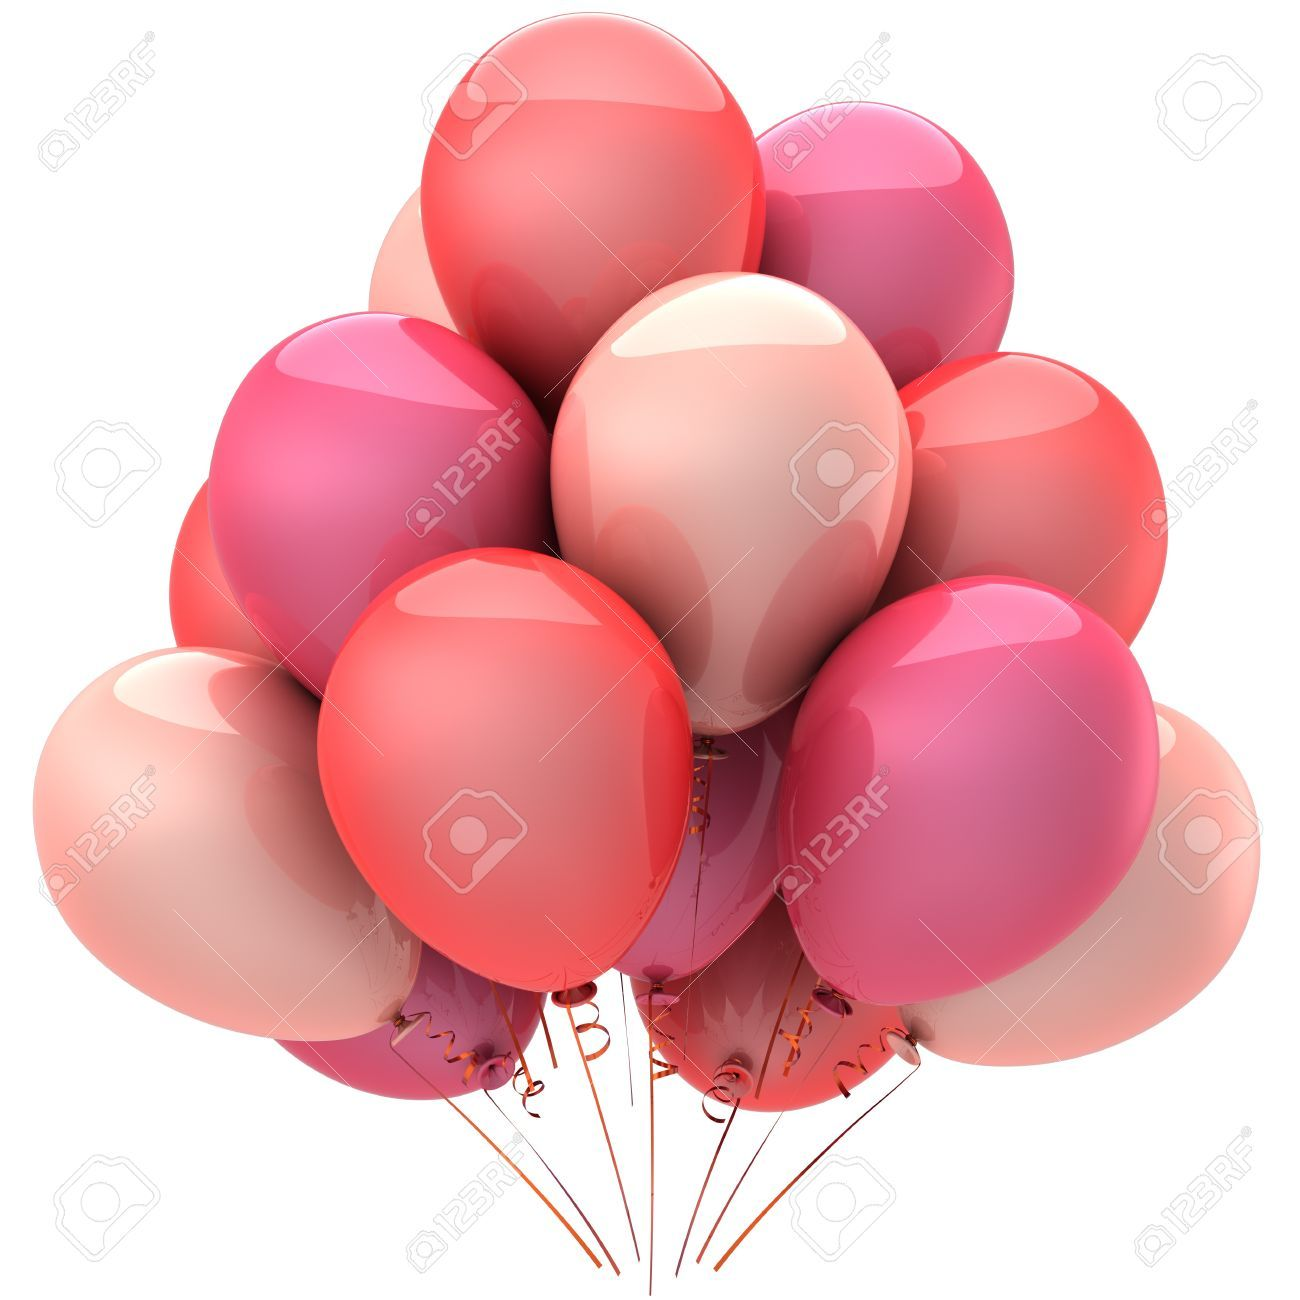 Party balloons colored romantic pink. Love sentimental emotions ...